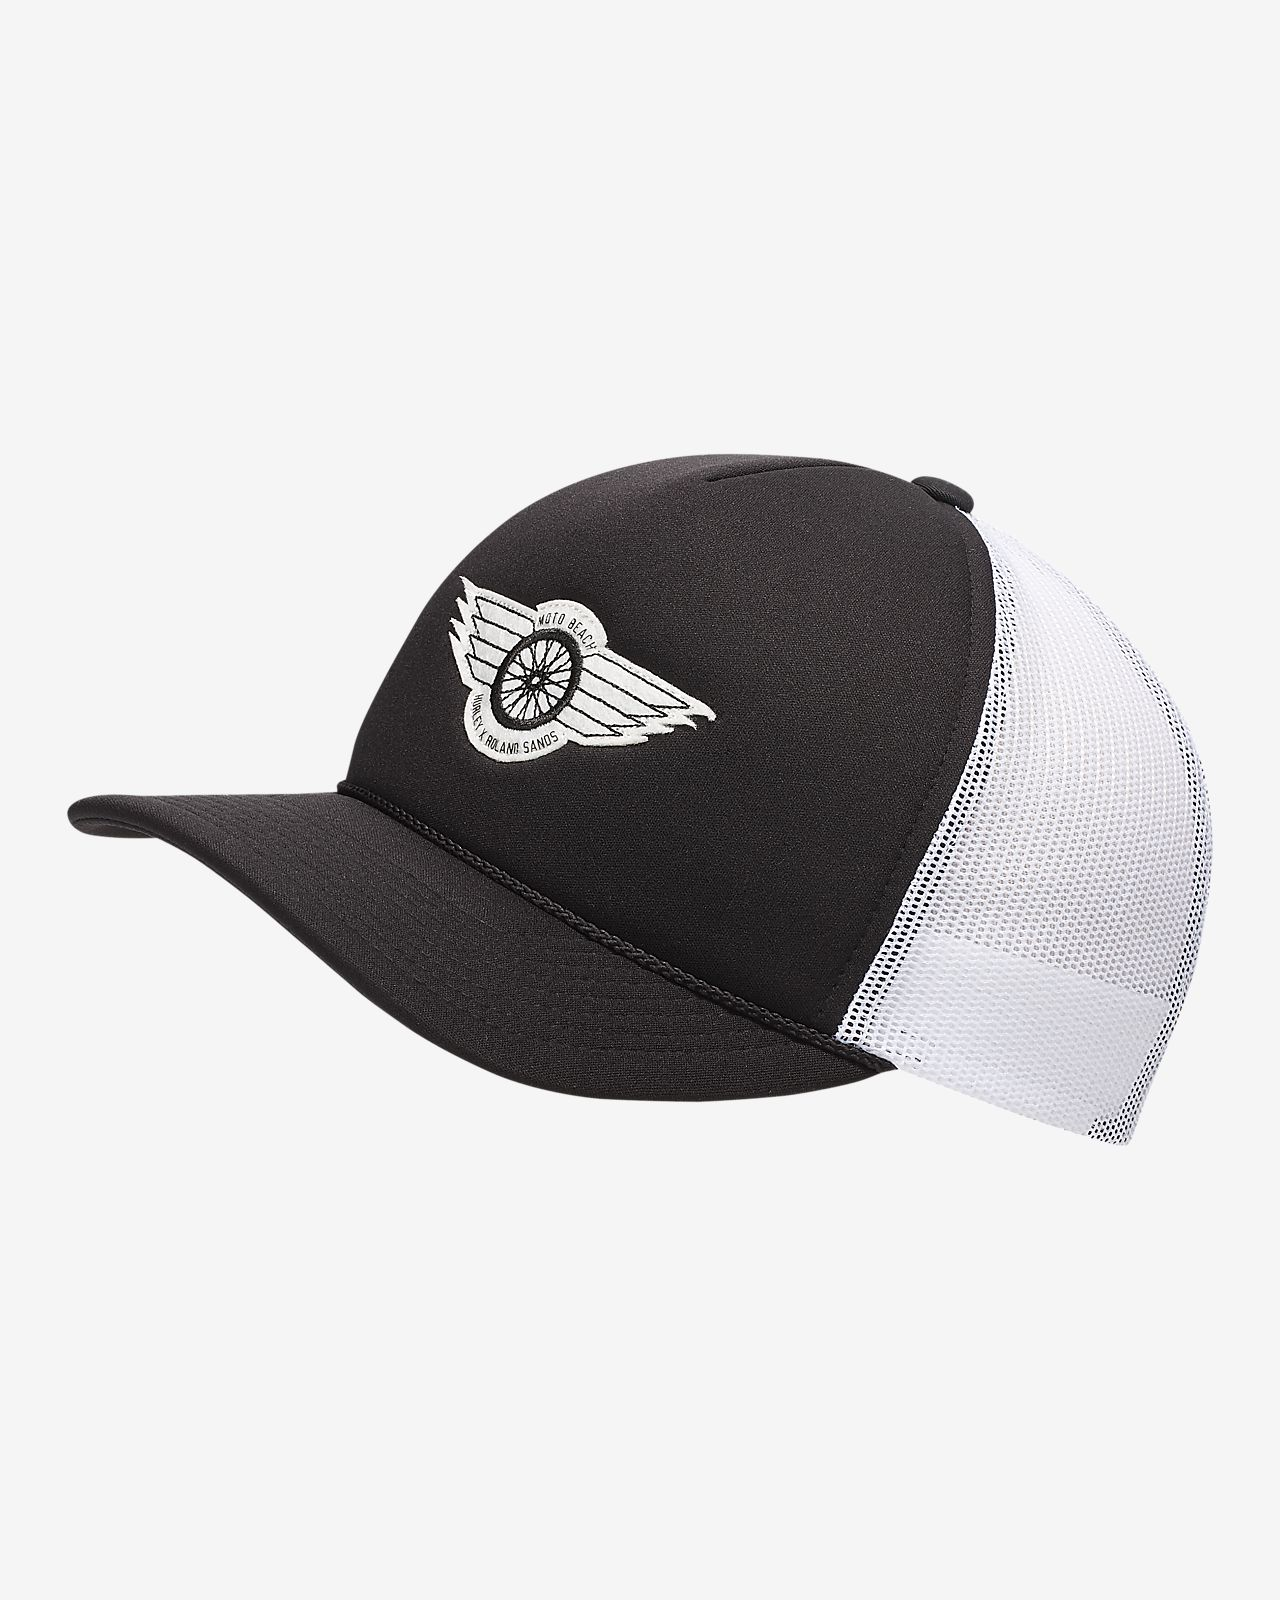 Hurley x Roland Sands Moto Beach Men's Hat